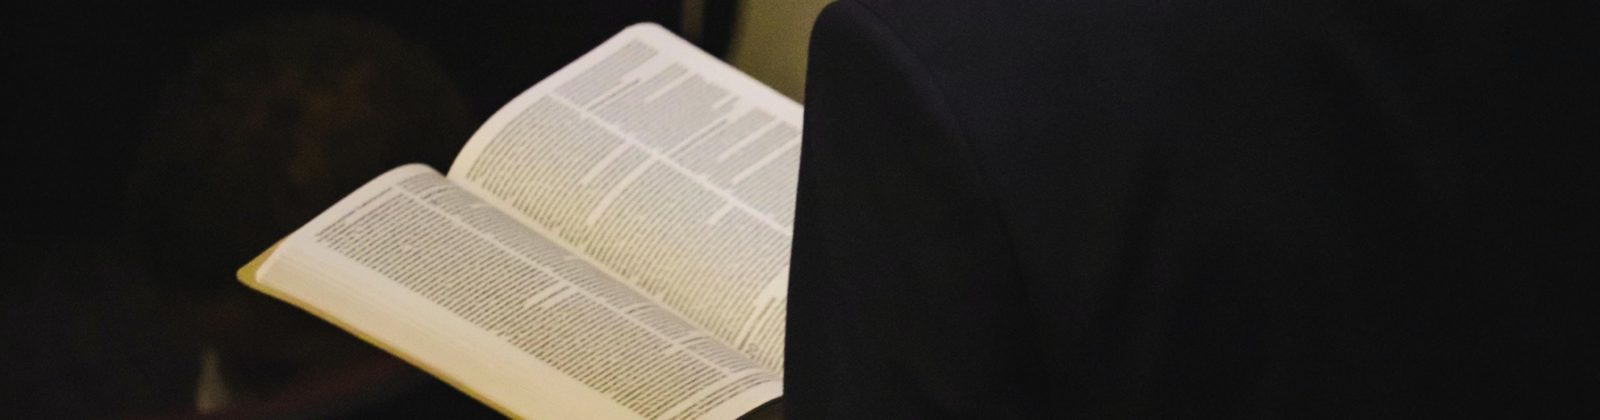 lds doctrines and practices